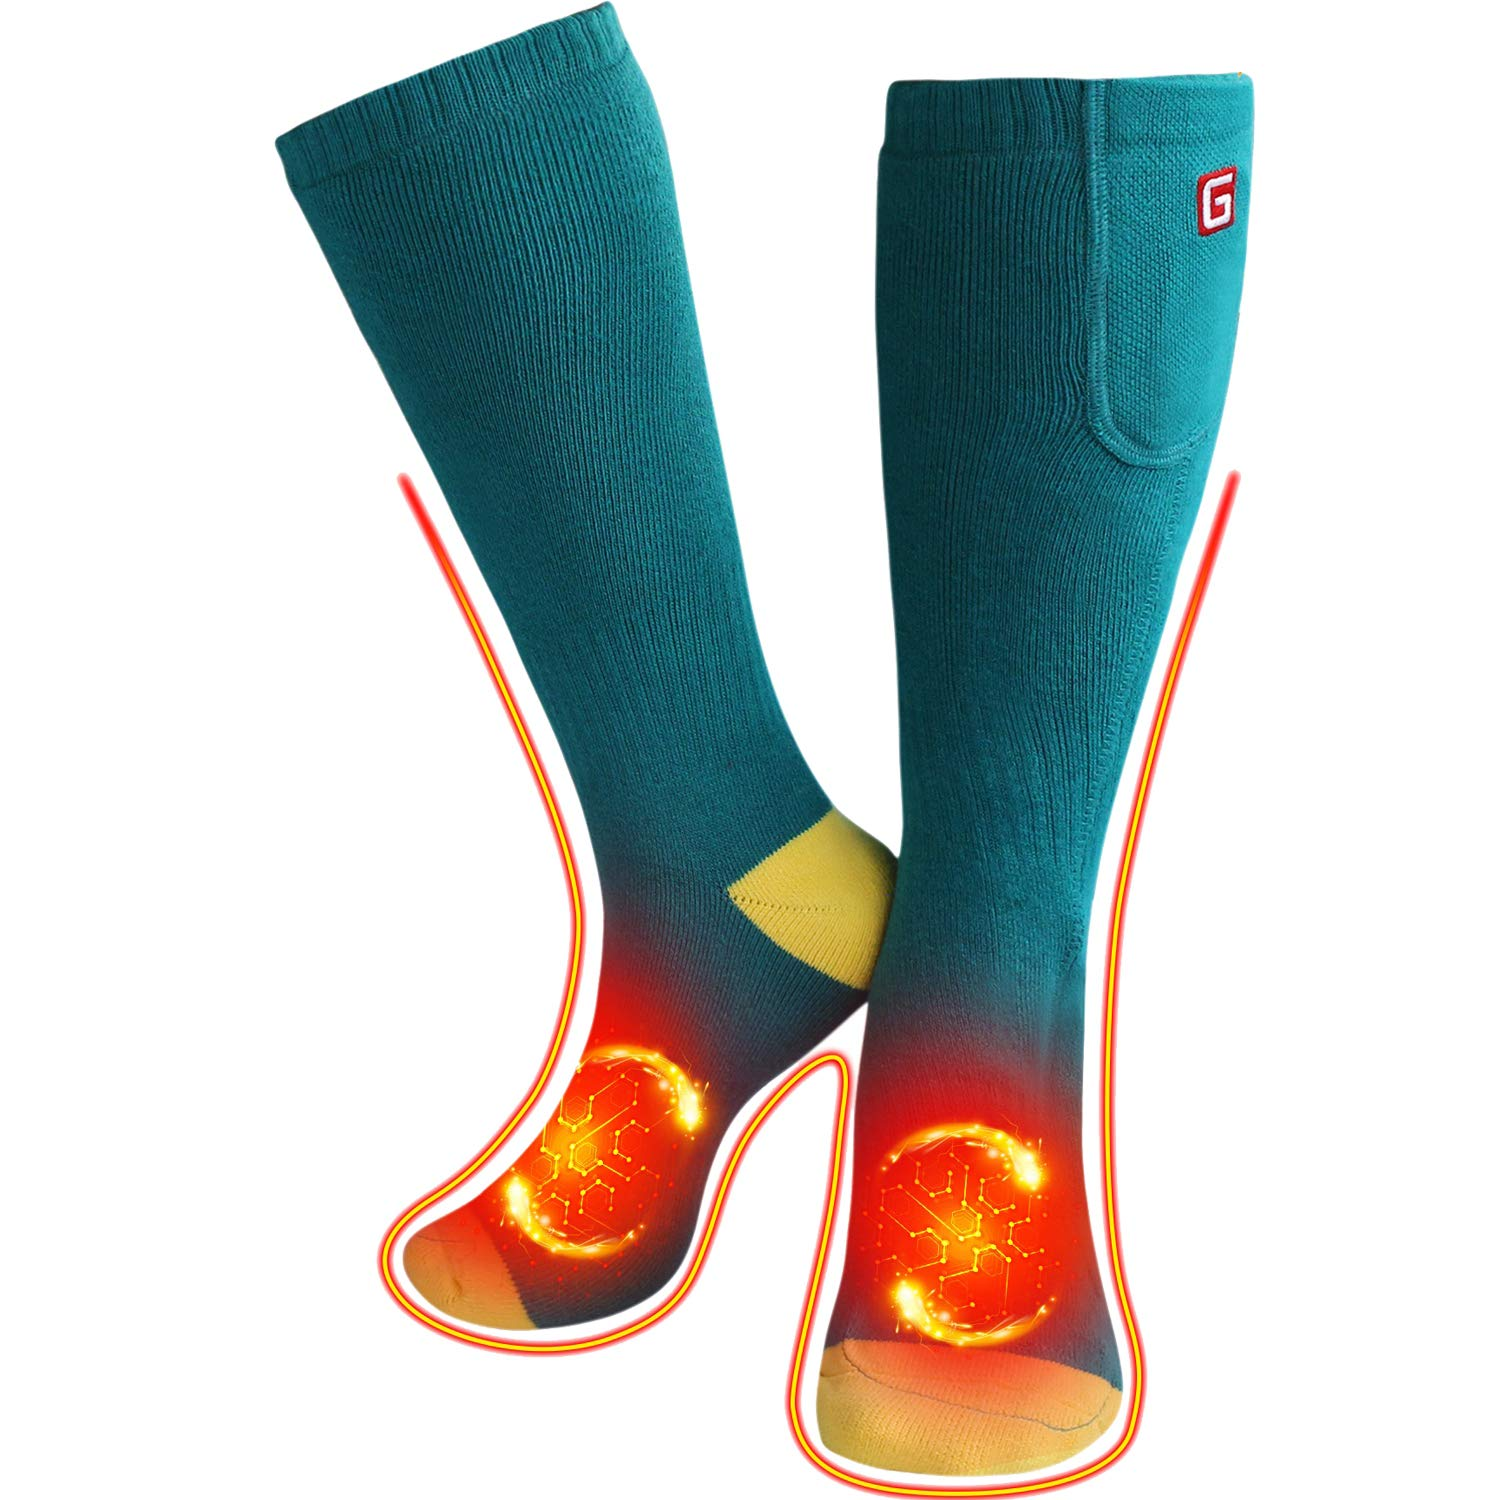 QILOVE Electric Heated Socks,Foot Warmer with Rechargeable Batteries for Hiking Motorcycling Skiing by QILOVE